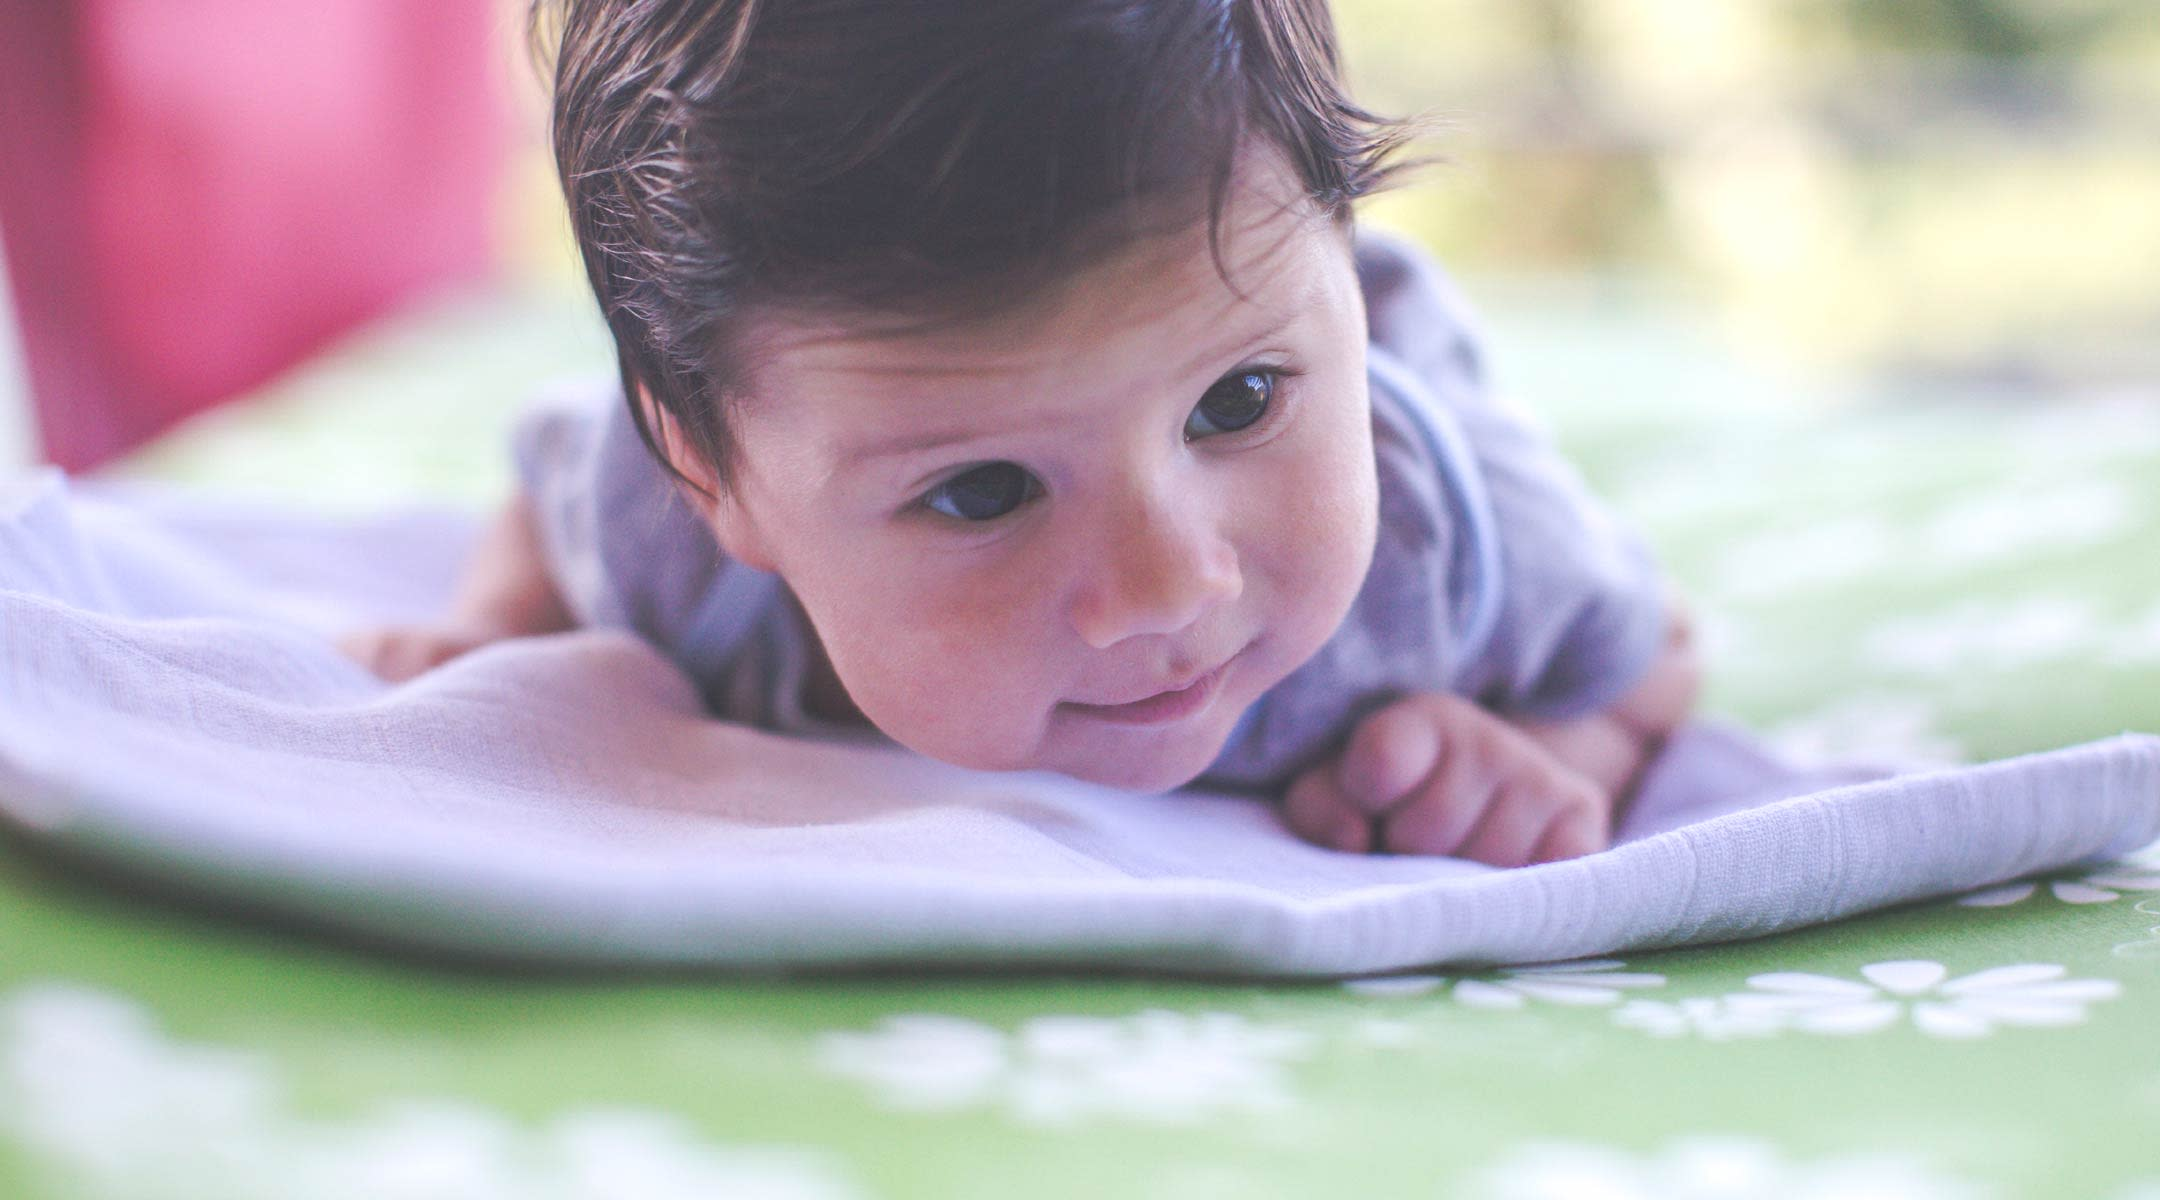 Baby with little smile doing tummy time.